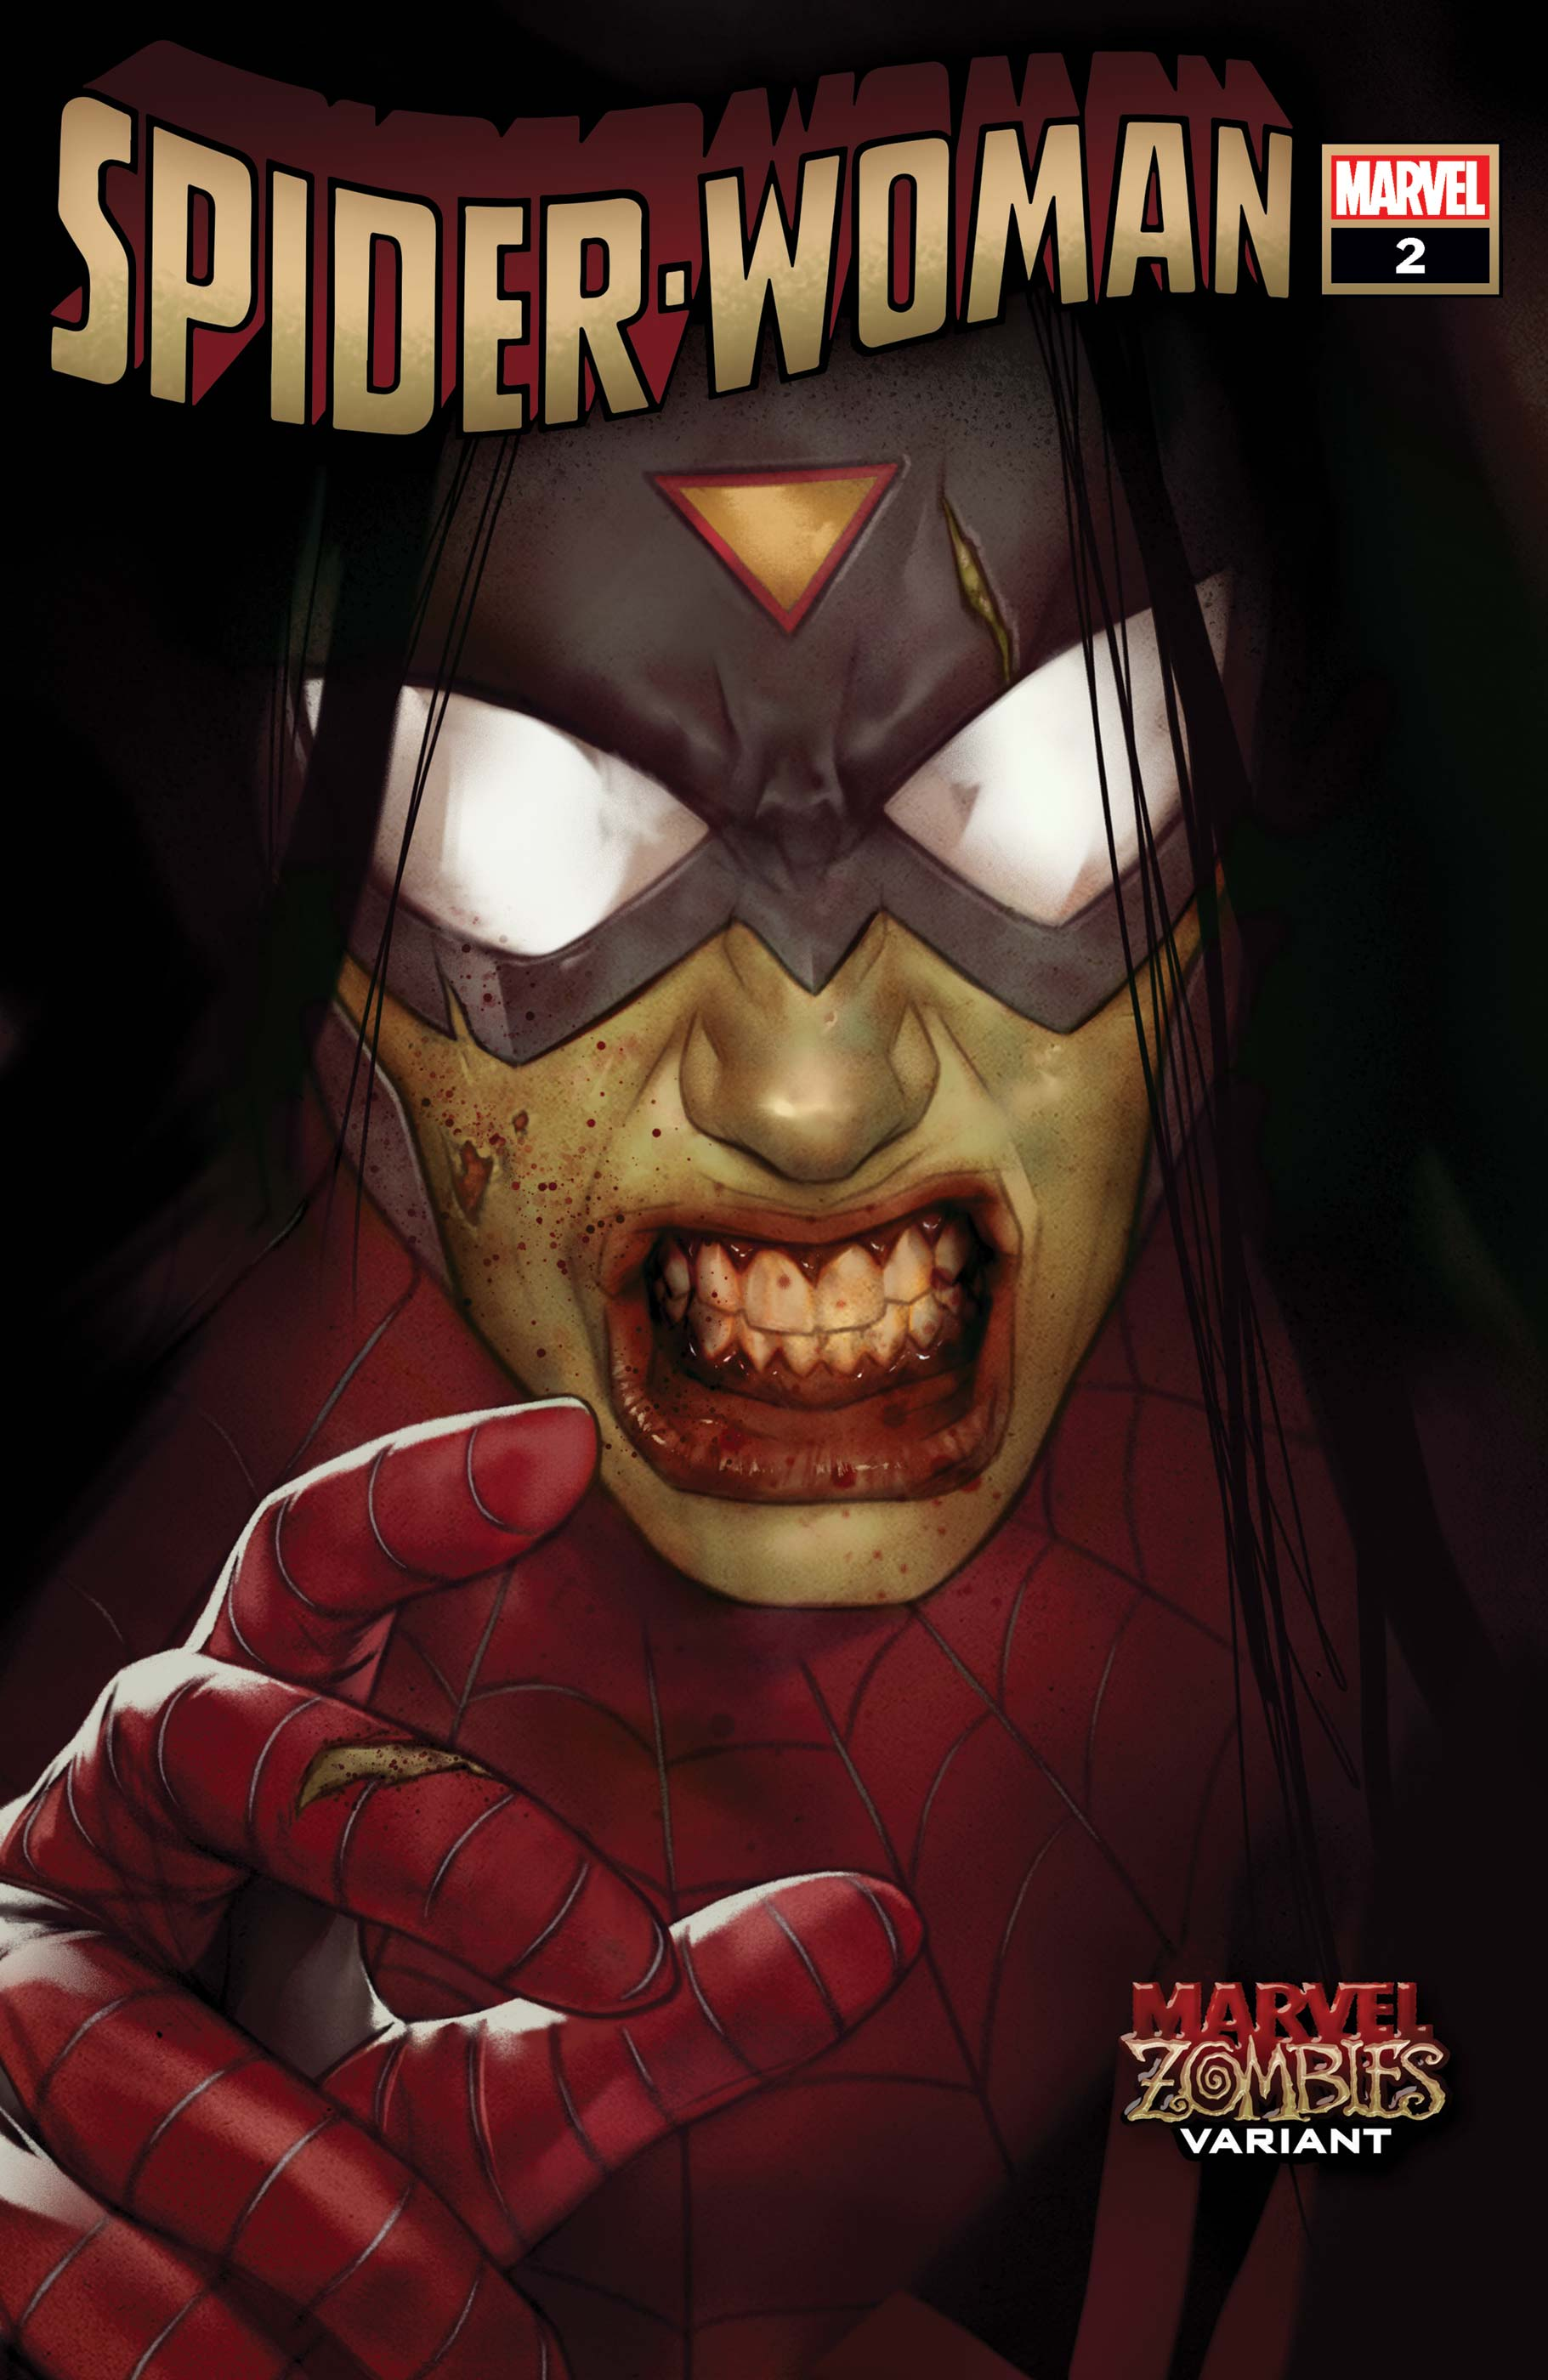 Spider-Woman (2020) #2 (Variant)